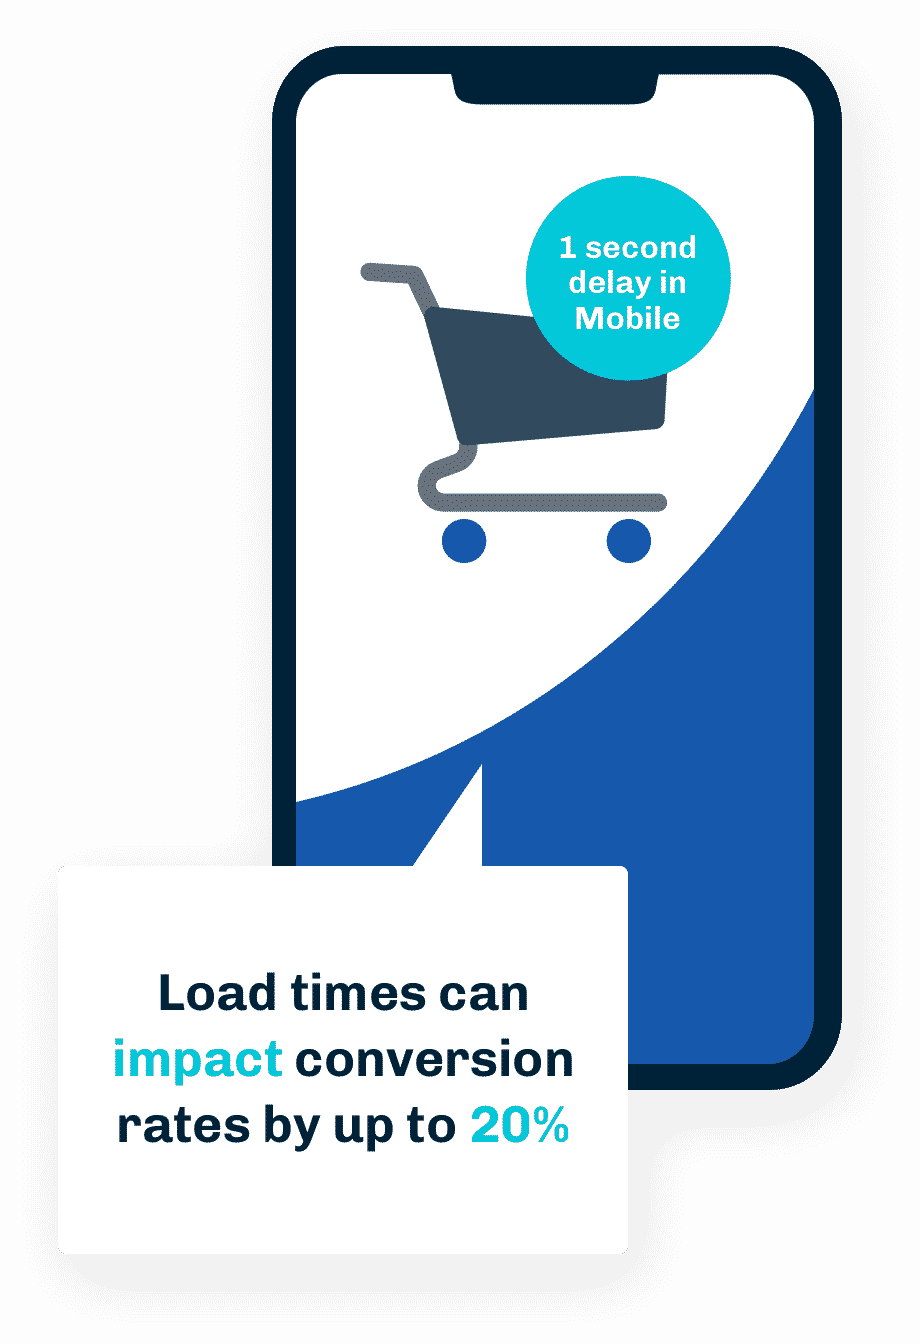 load times can impact conversion rates by up to 20%